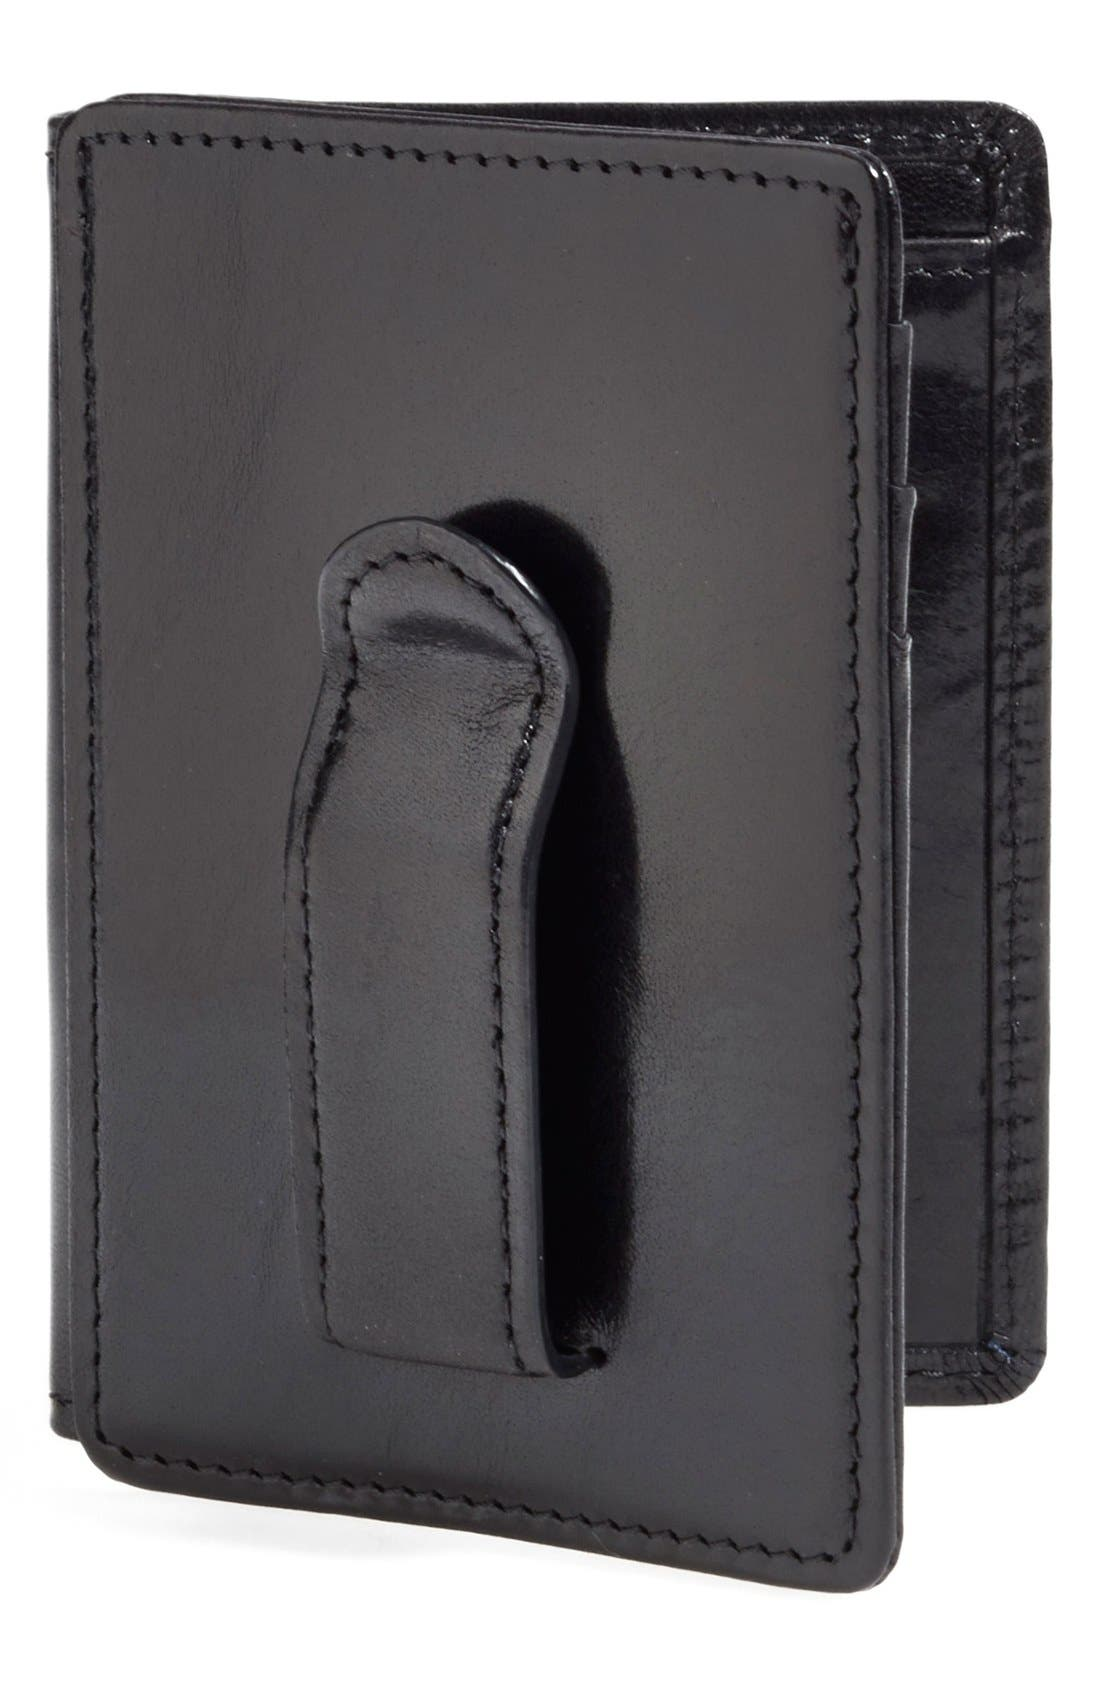 Main Image - Bosca 'Old Leather' Front Pocket ID Wallet